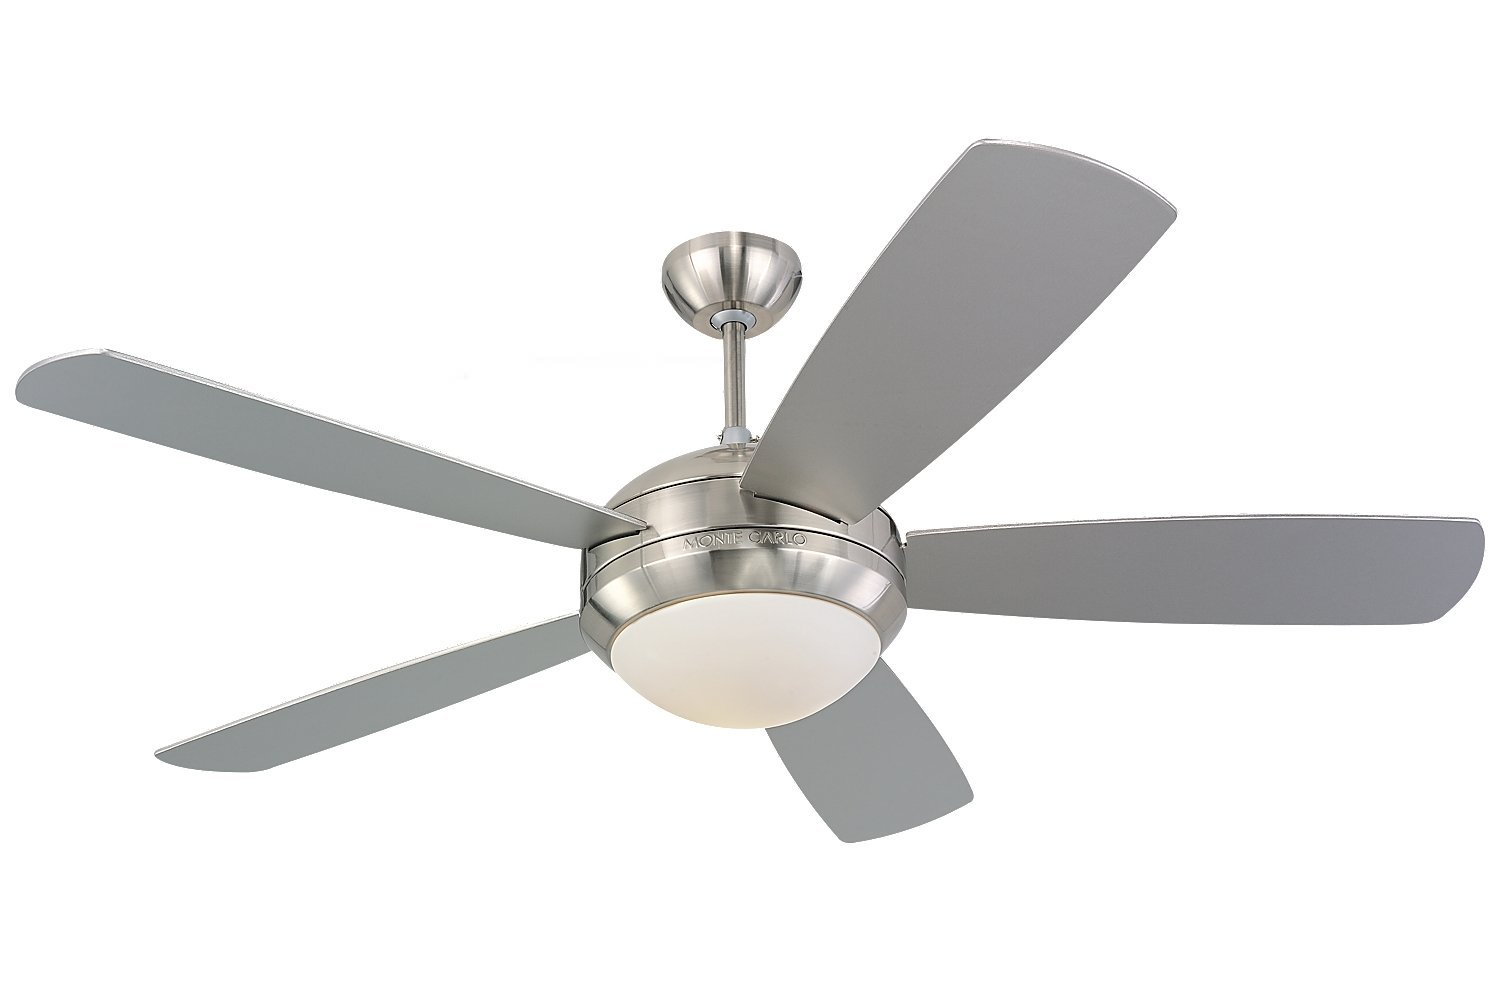 "Monte Carlo 5DI52BSD-L, Discus, 52"" Ceiling Fan, Brushed Steel"